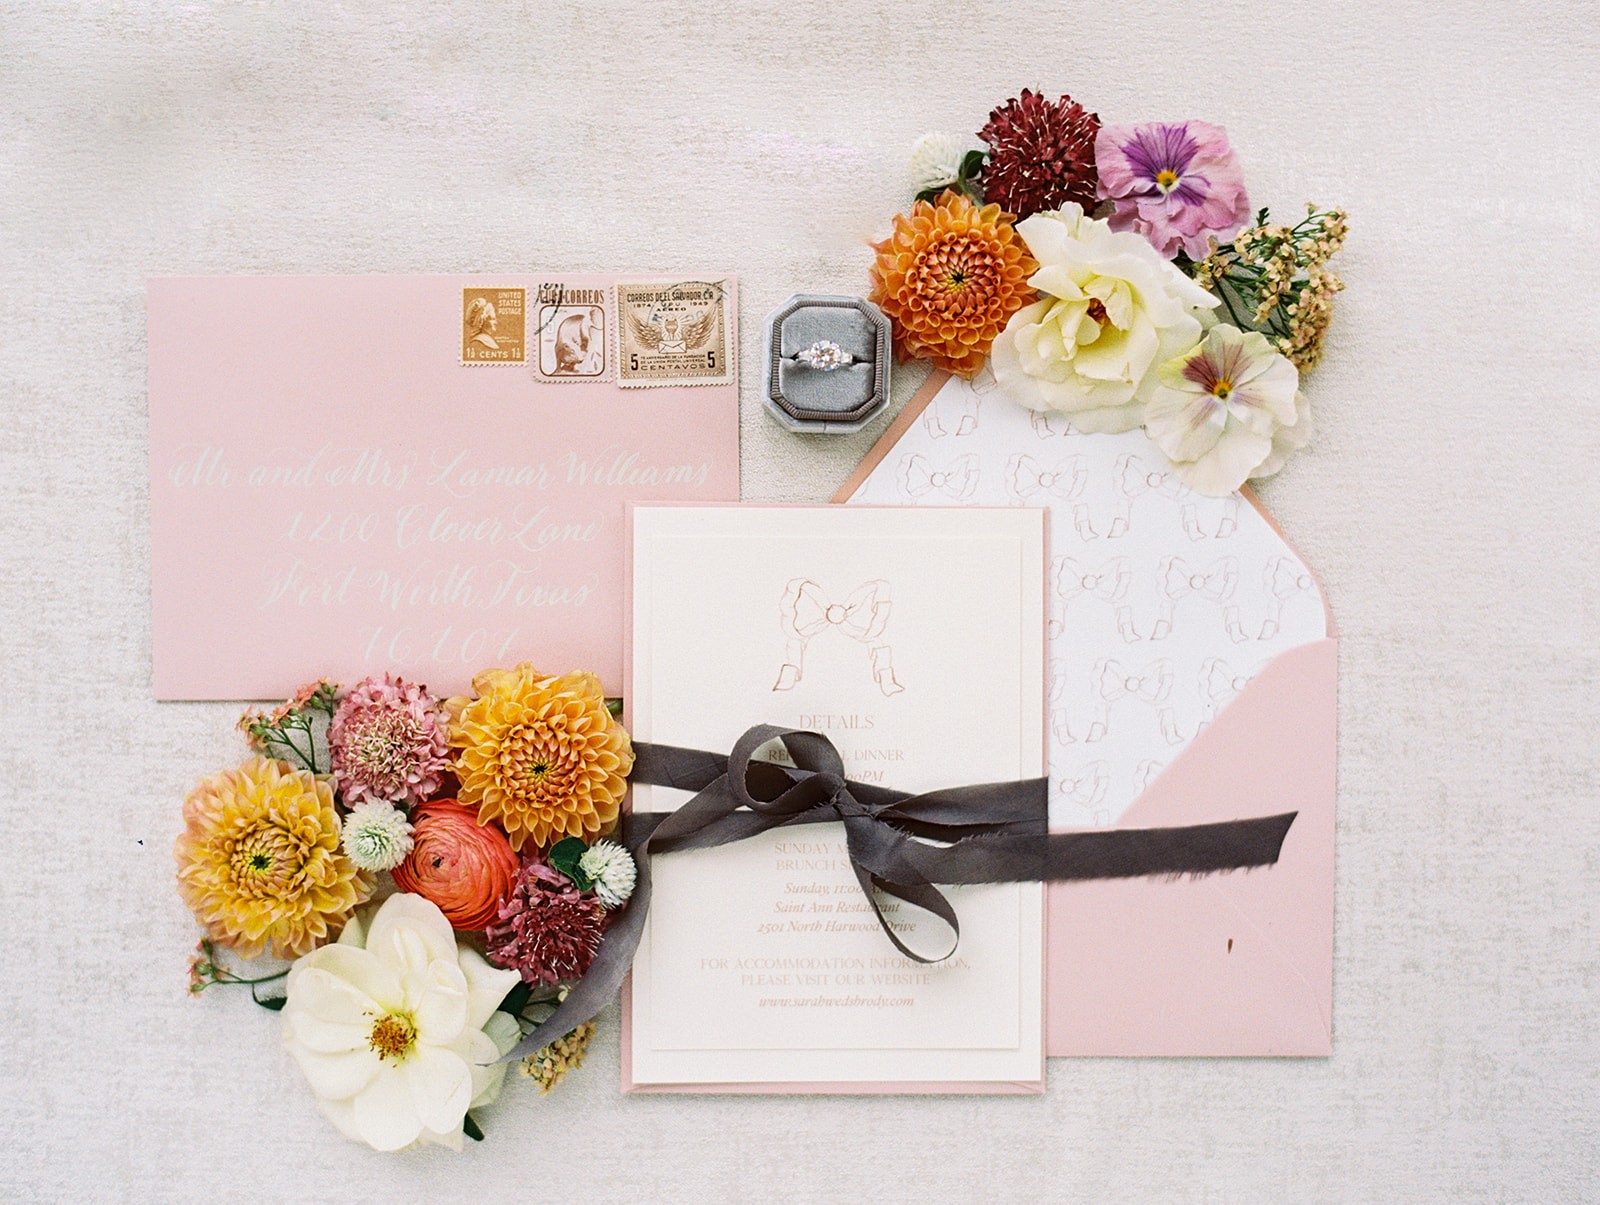 Elegant wedding invitation suite design | Alexa Kay Events